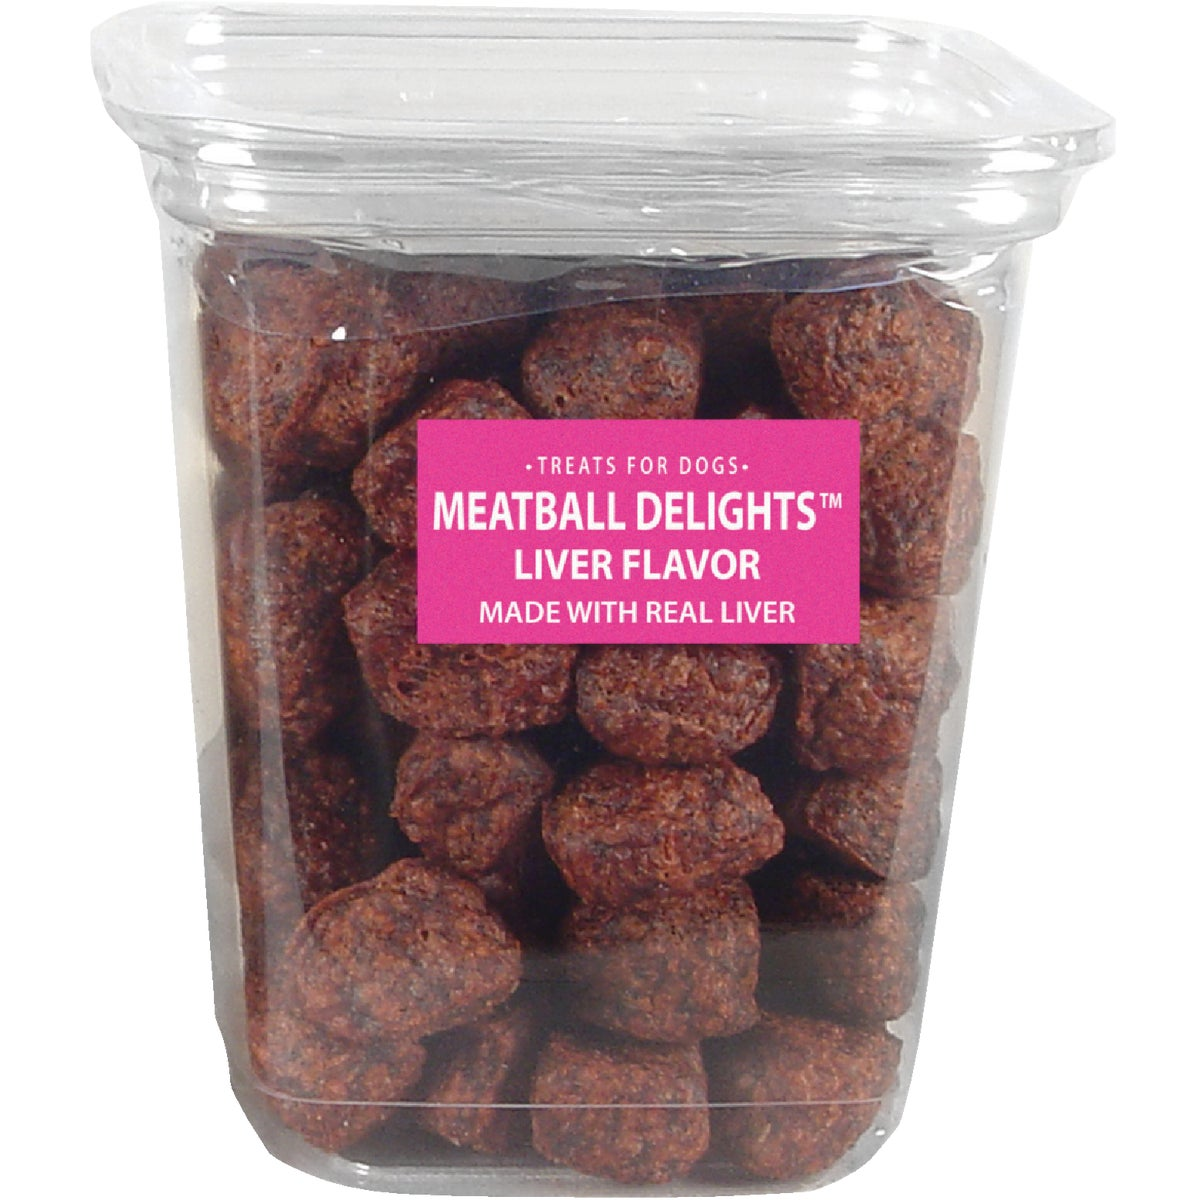 MEATBALL DELIGHTS LIVER